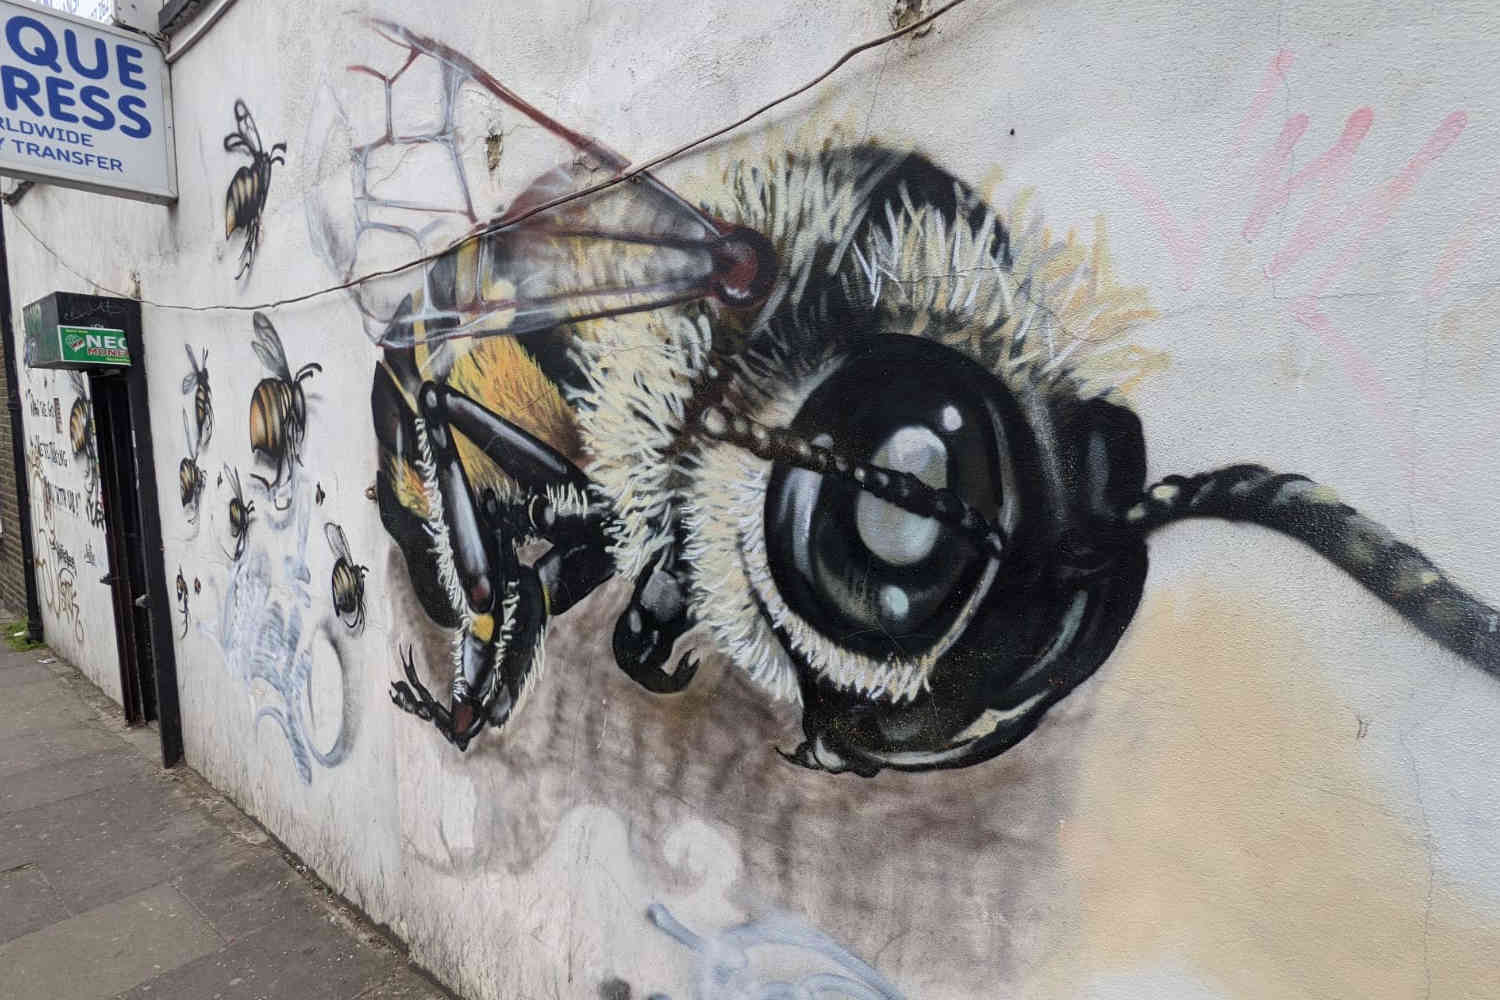 Mural of flying bees on the side of a wall off Bethnal Green Road